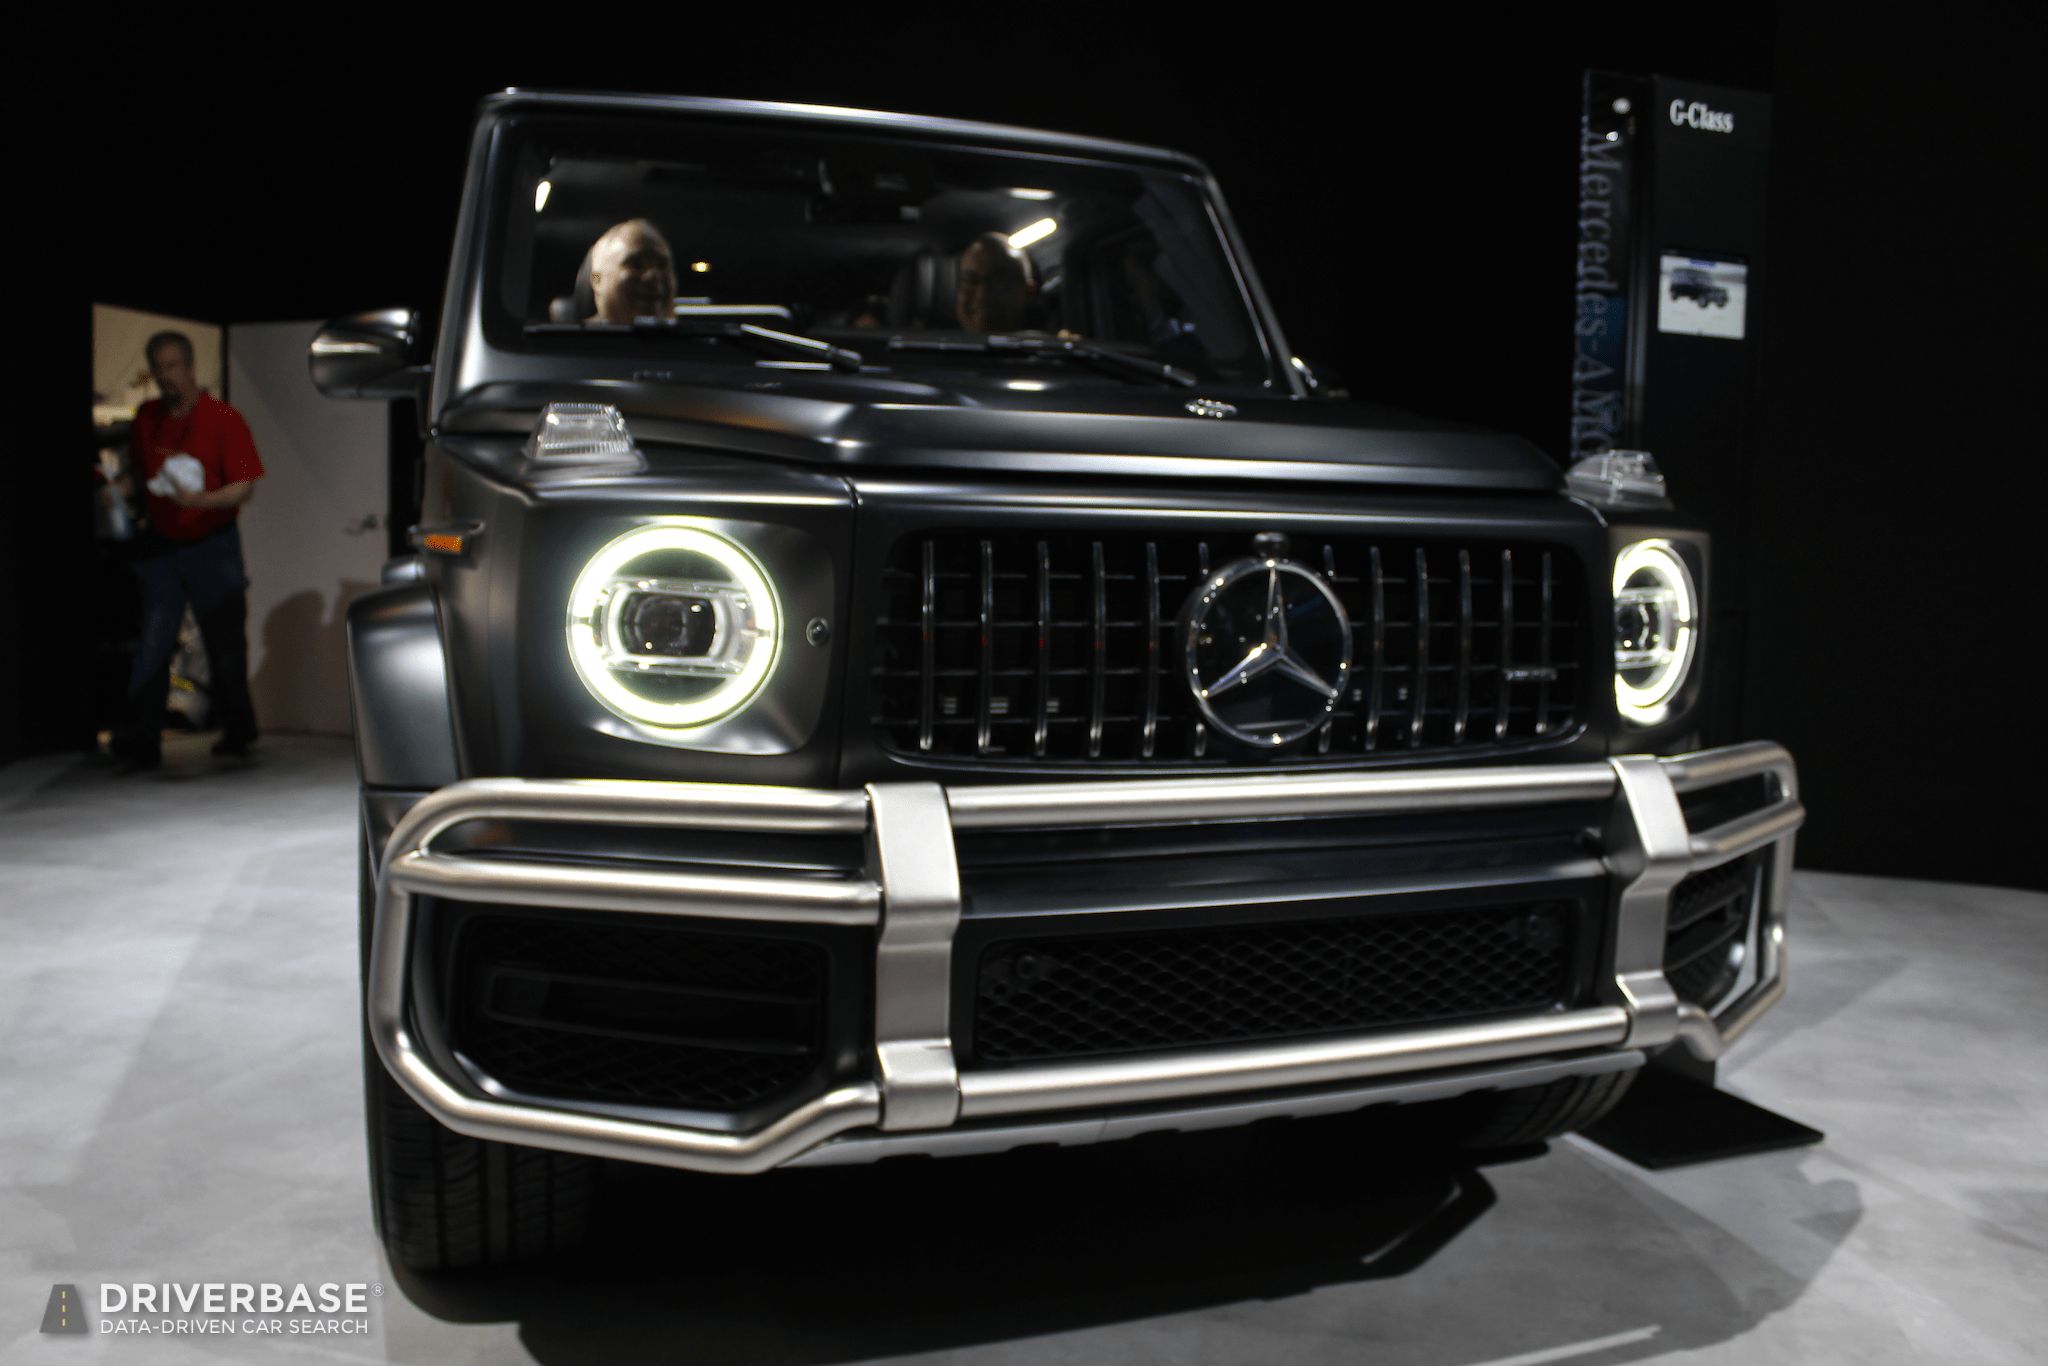 2020 Mercedes Benz Amg G Class Suv At The 2019 New York Auto Show Driverbase